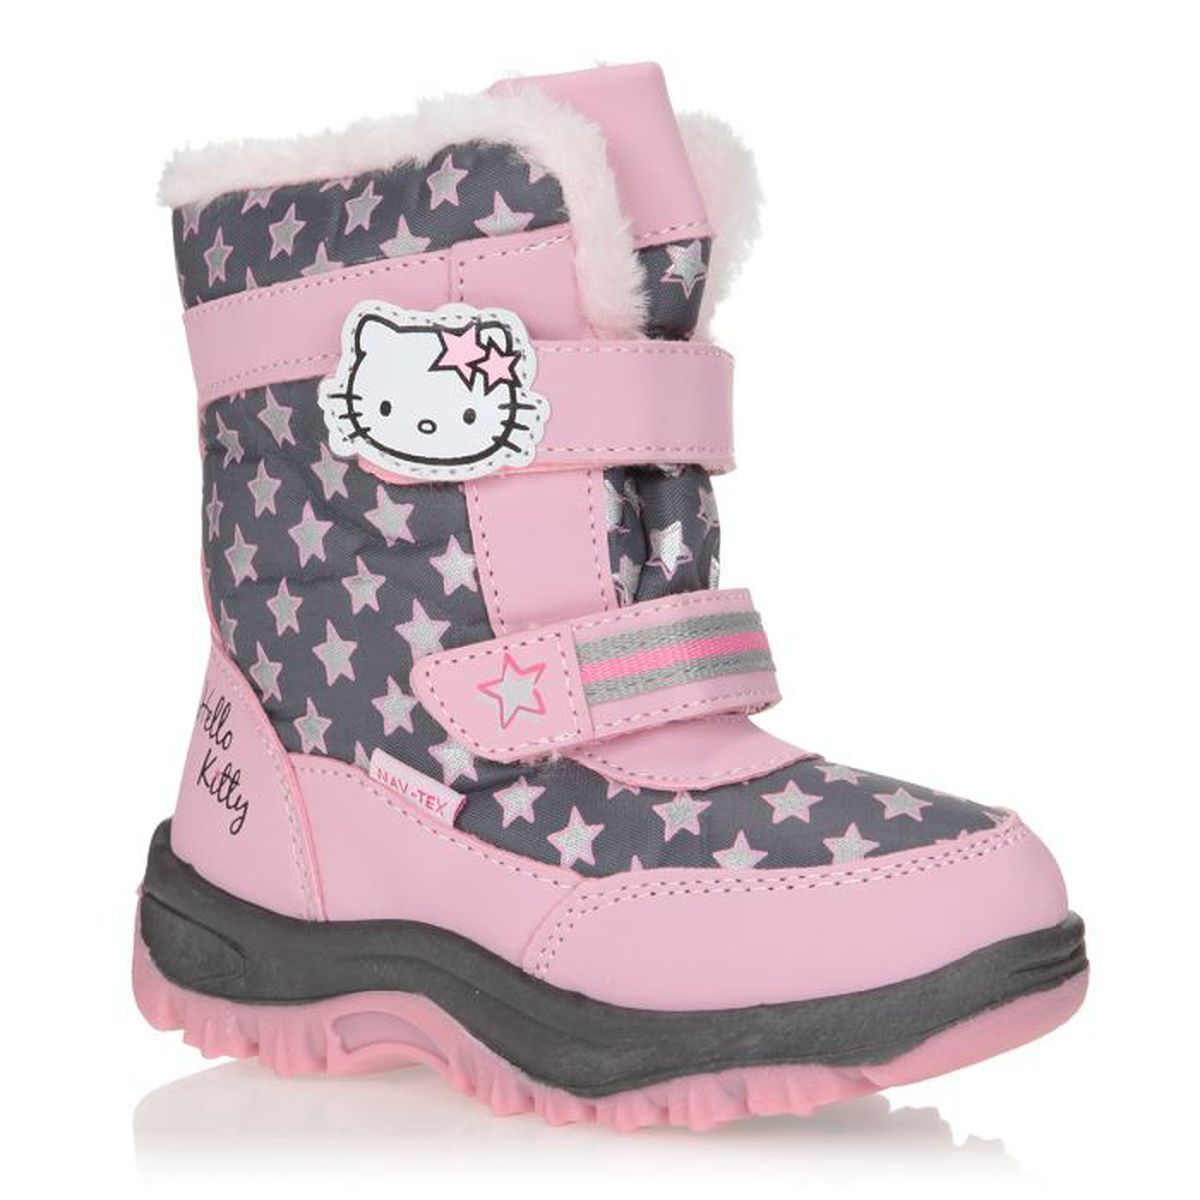 hello kitty bottes de neige papo enfant fille rose et gris achat vente botte cdiscount. Black Bedroom Furniture Sets. Home Design Ideas